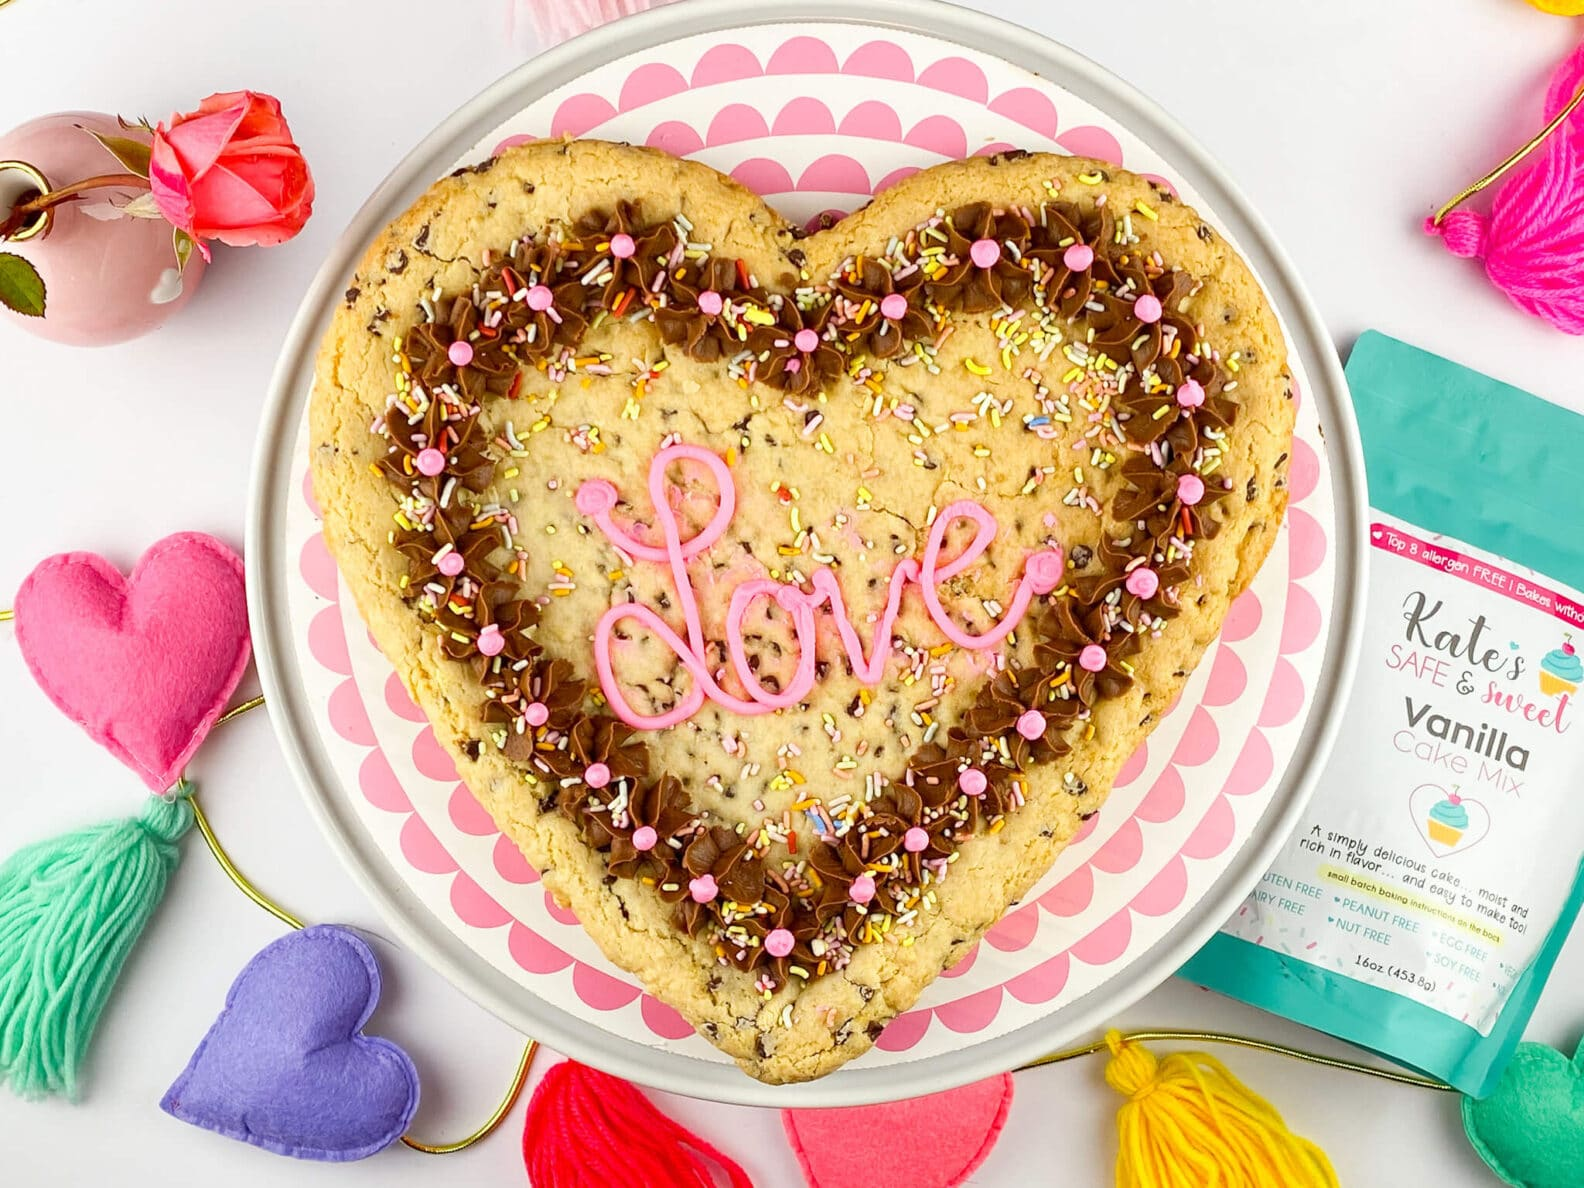 Kate's Safe and Sweet - Heart Shaped Cookie Cake with Mix